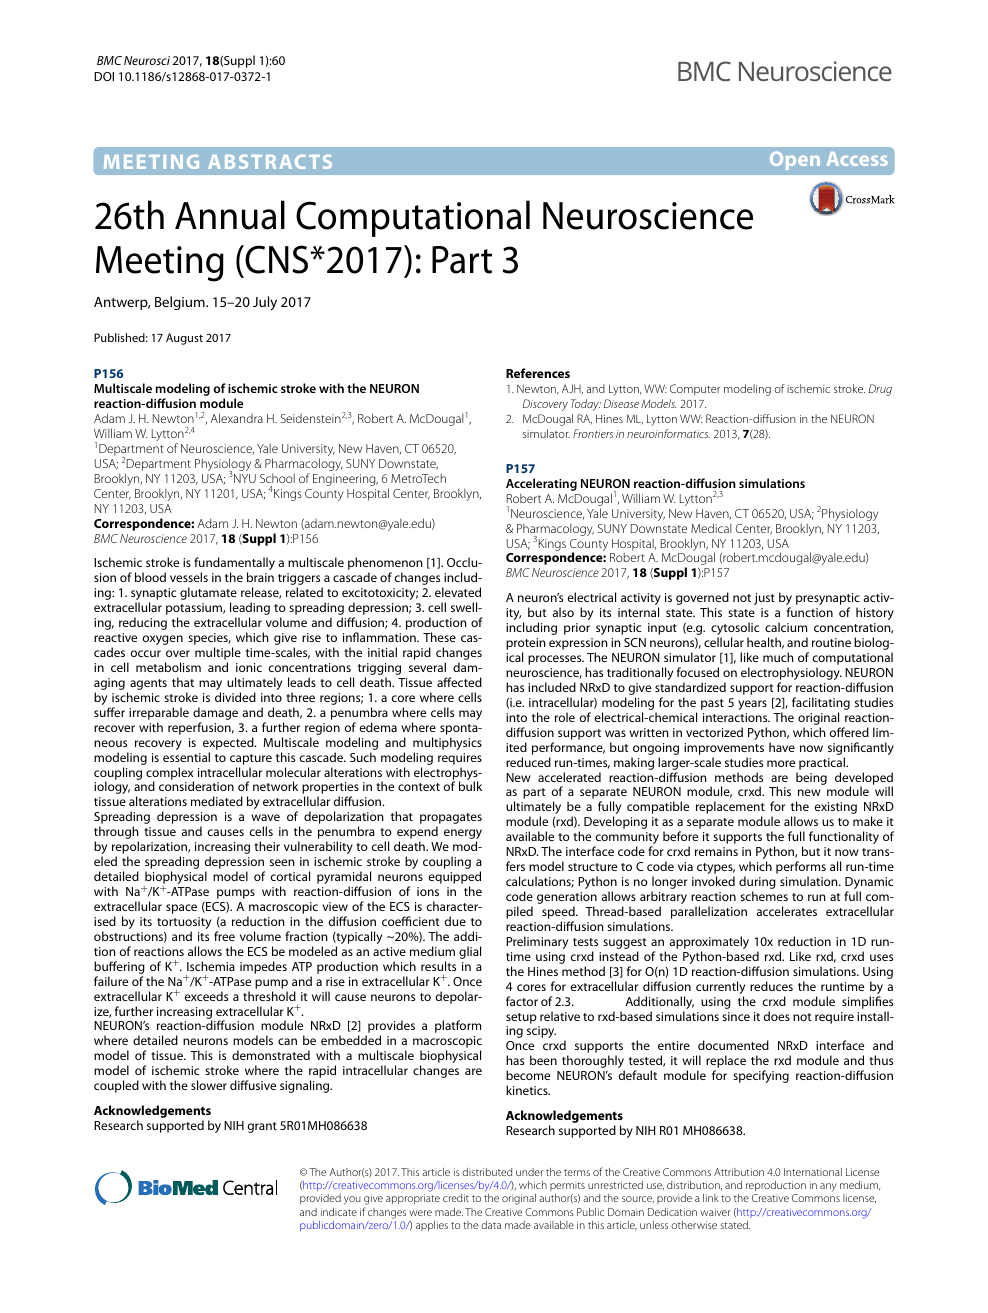 26th Annual Computational Neuroscience Meeting (CNS*2017